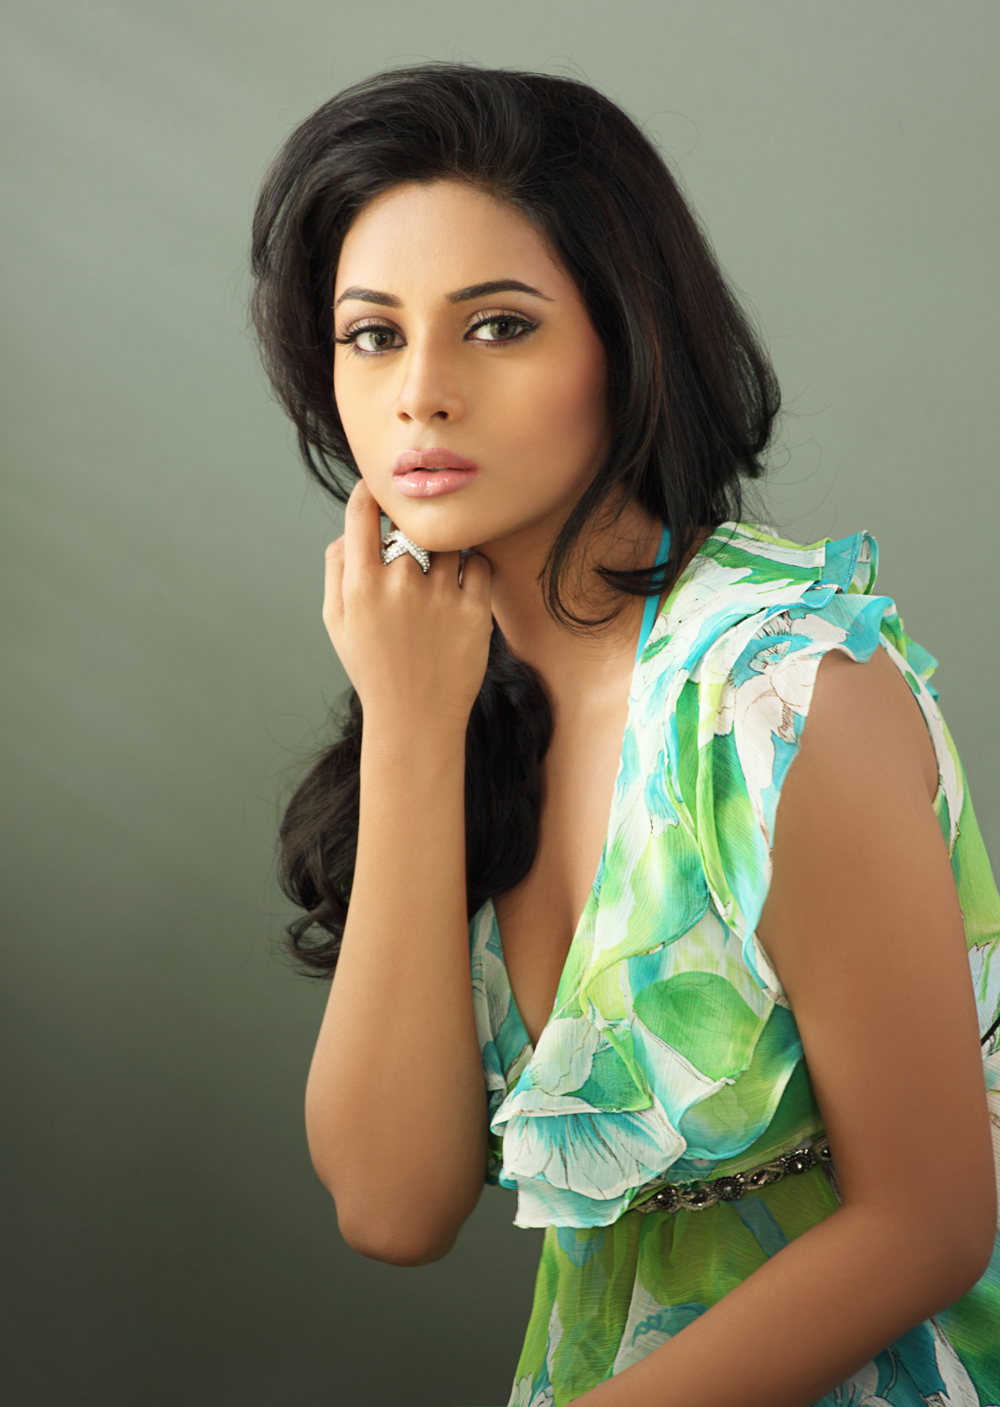 Suza latest hot spicy image gallerie